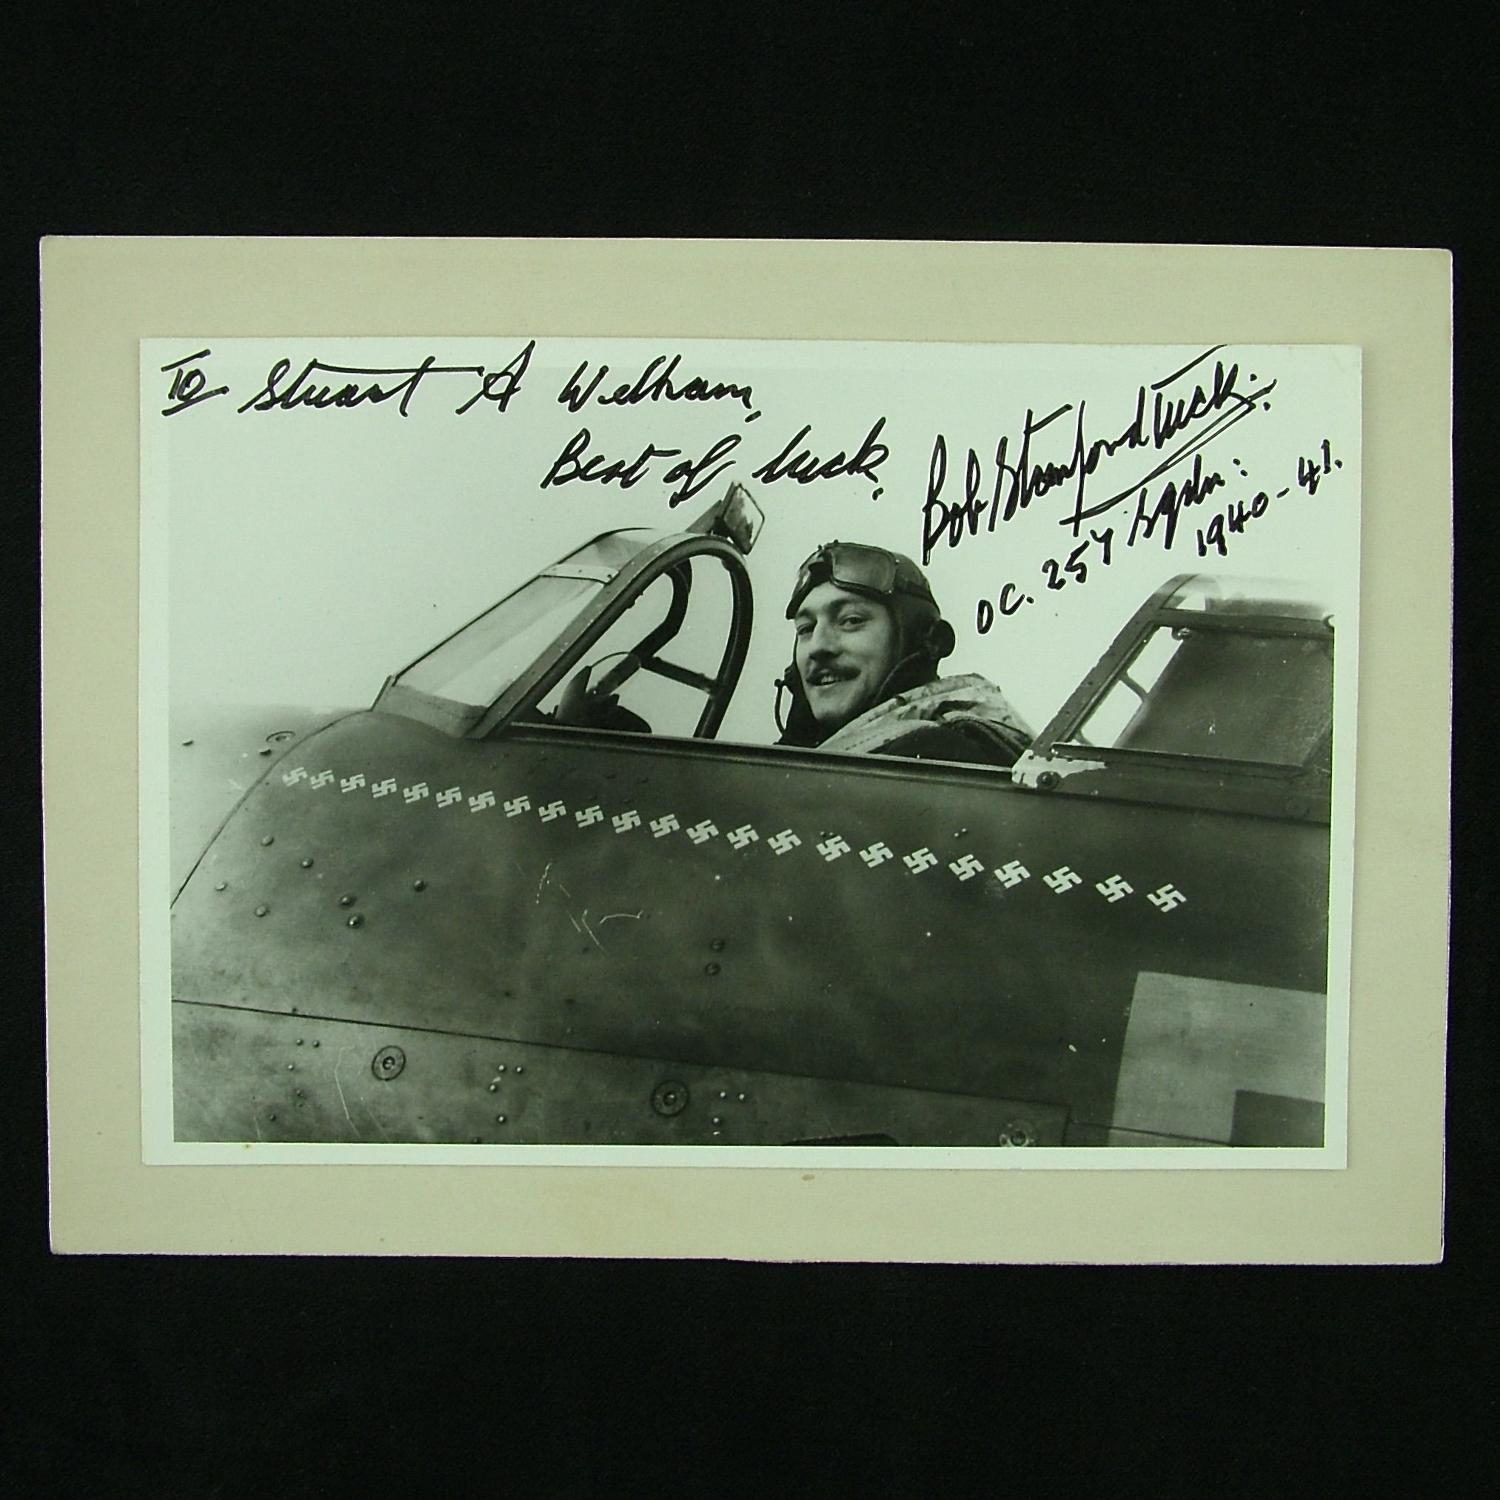 Signed photograph of Bob Stanford Tuck